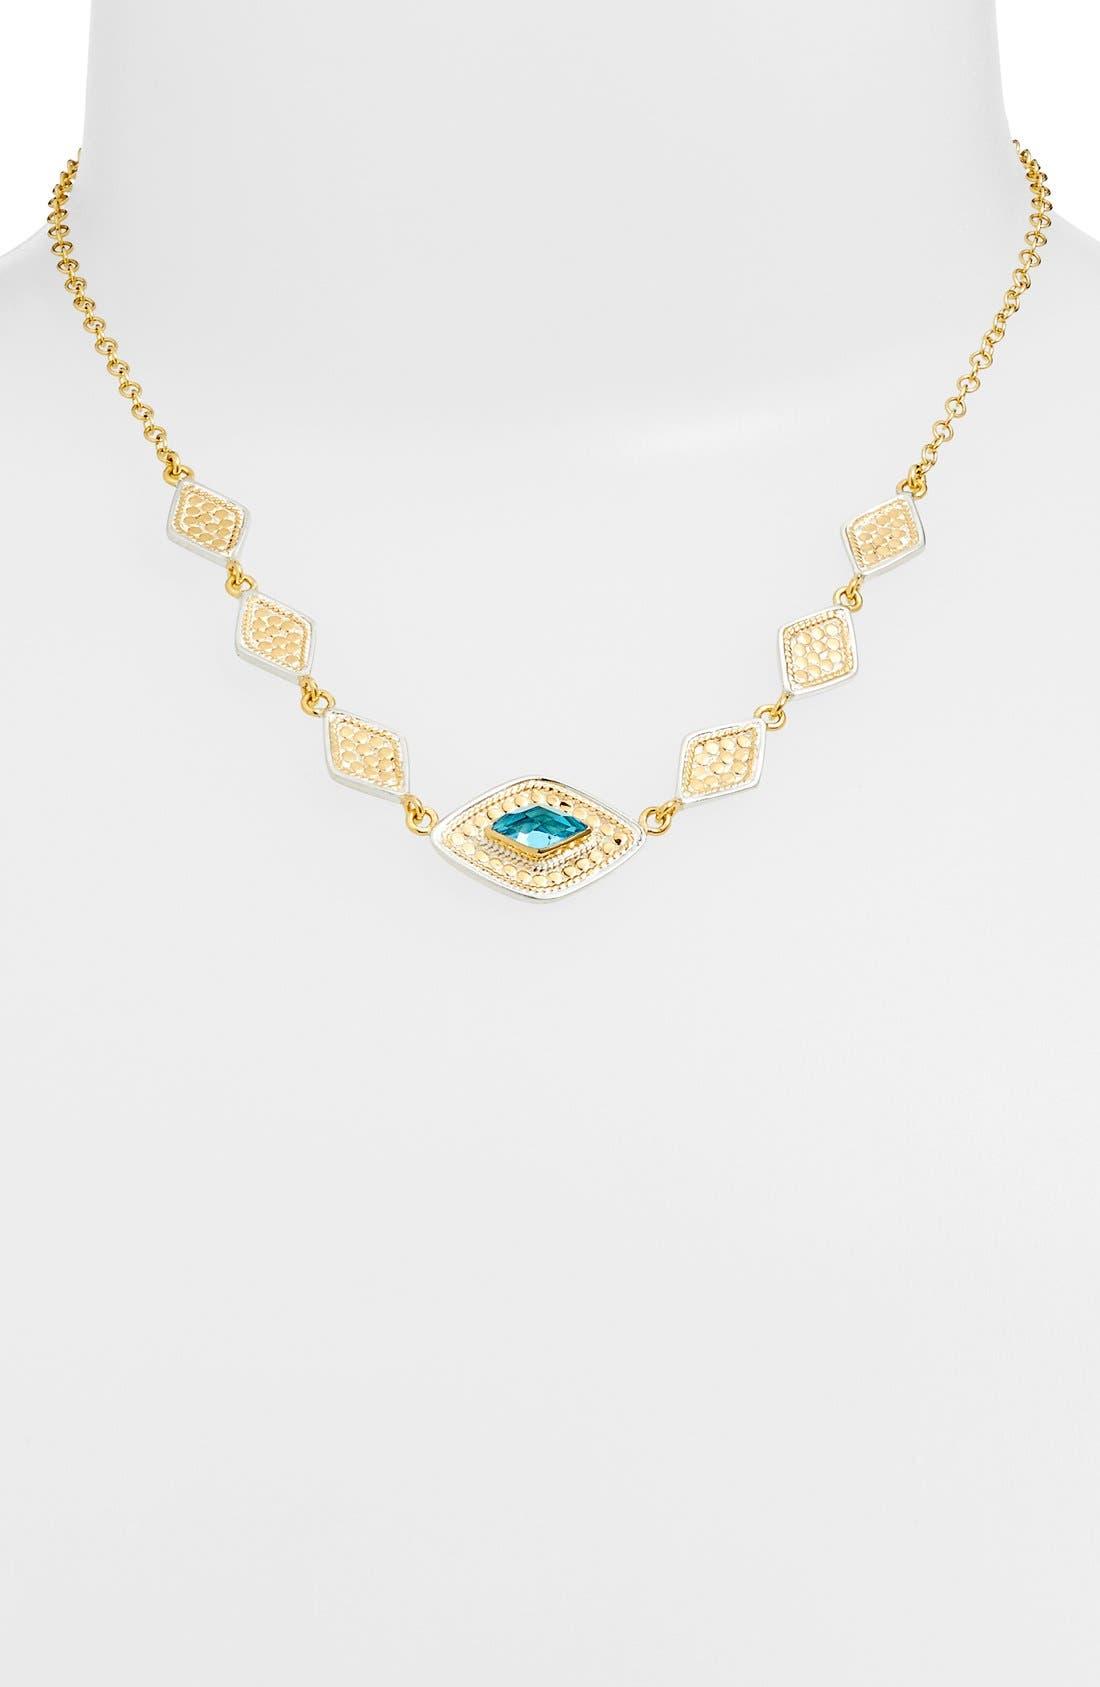 Alternate Image 1 Selected - Anna Beck 'Gili' Frontal Necklace